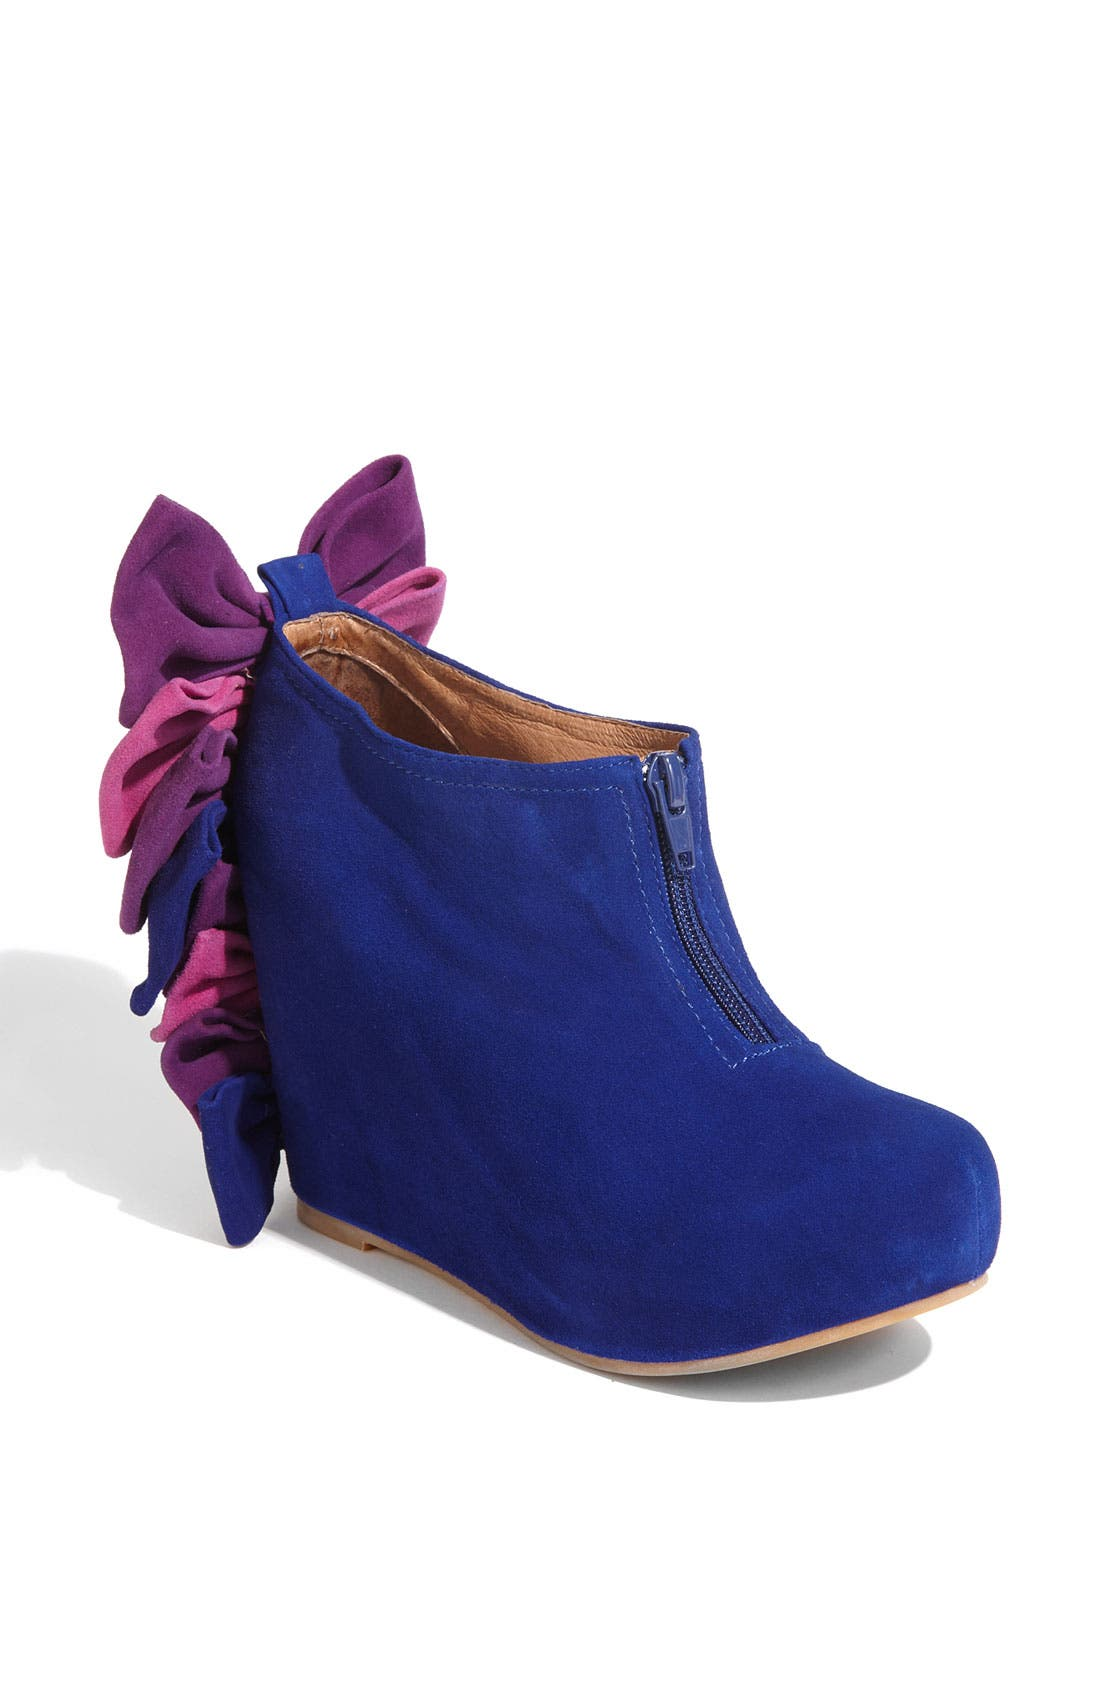 Alternate Image 1 Selected - Jeffrey Campbell 'Backbow' Bootie